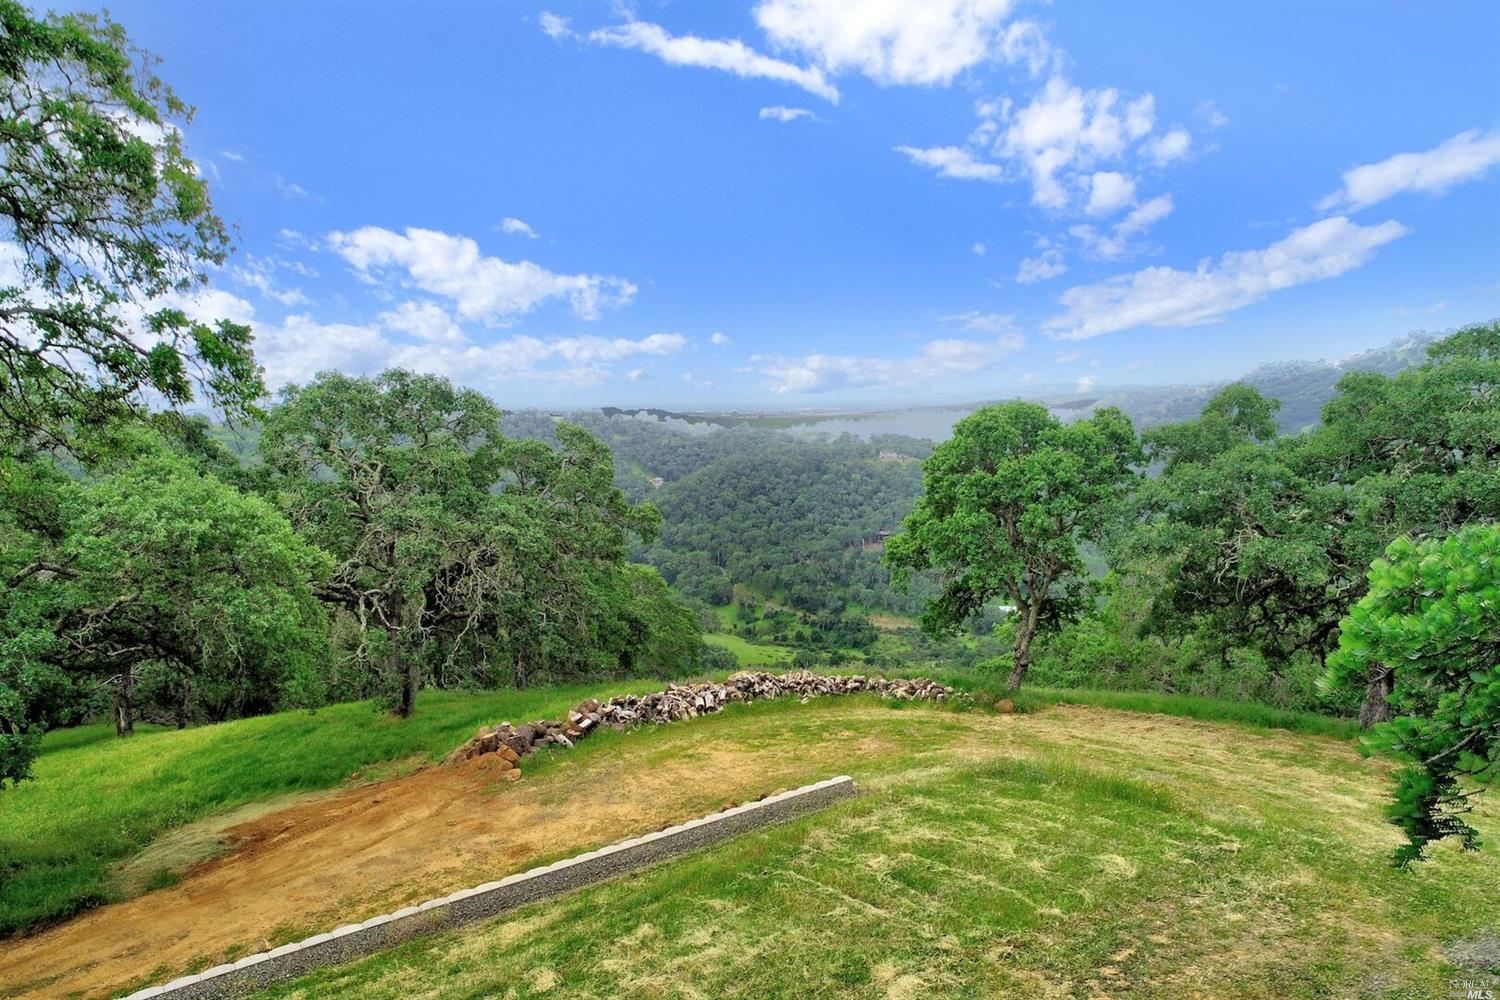 This Breathtaking 20 Acre property is gated off of Grandview Road. Located midway between Napa and Fairfield off of Gordon Valley Road. Situated atop of the hill with panoramic views overlooking Napa, Fairfield & Mount Diablo is Truly Unique. This property is ready for you to build your one of a kind dream home!